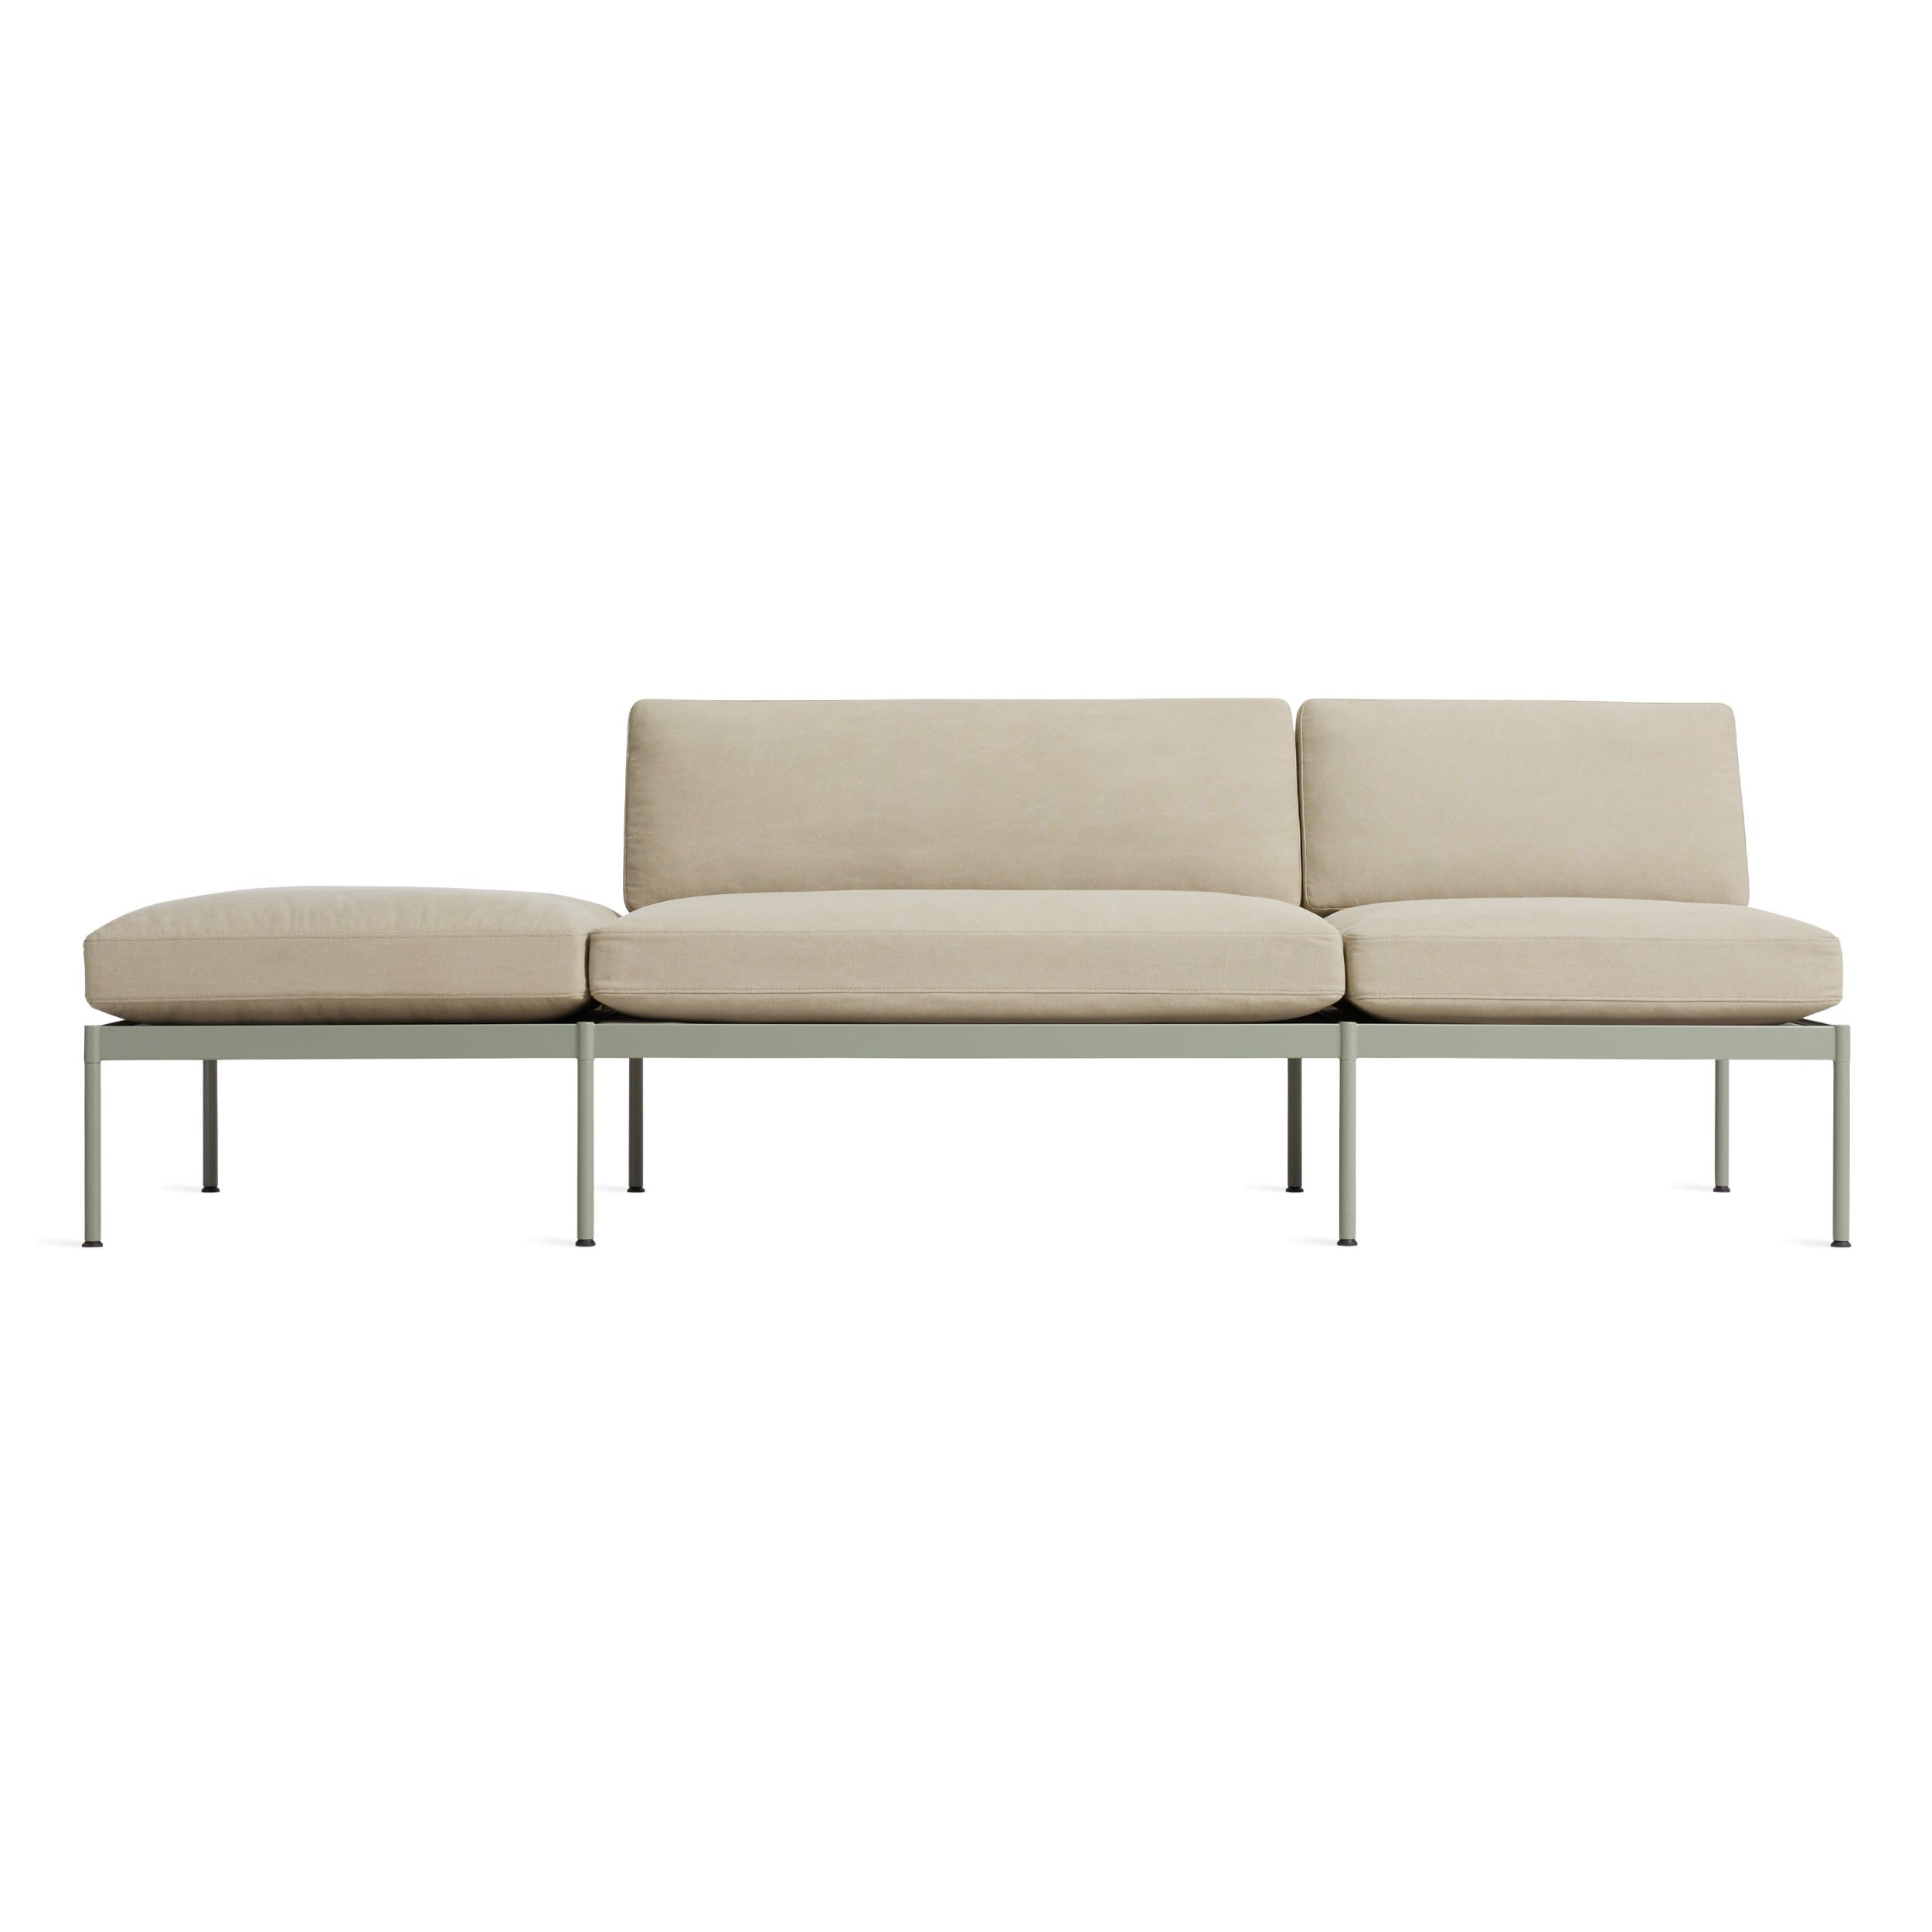 "Chassis 104"" Right/Left Sofa with Cushion"